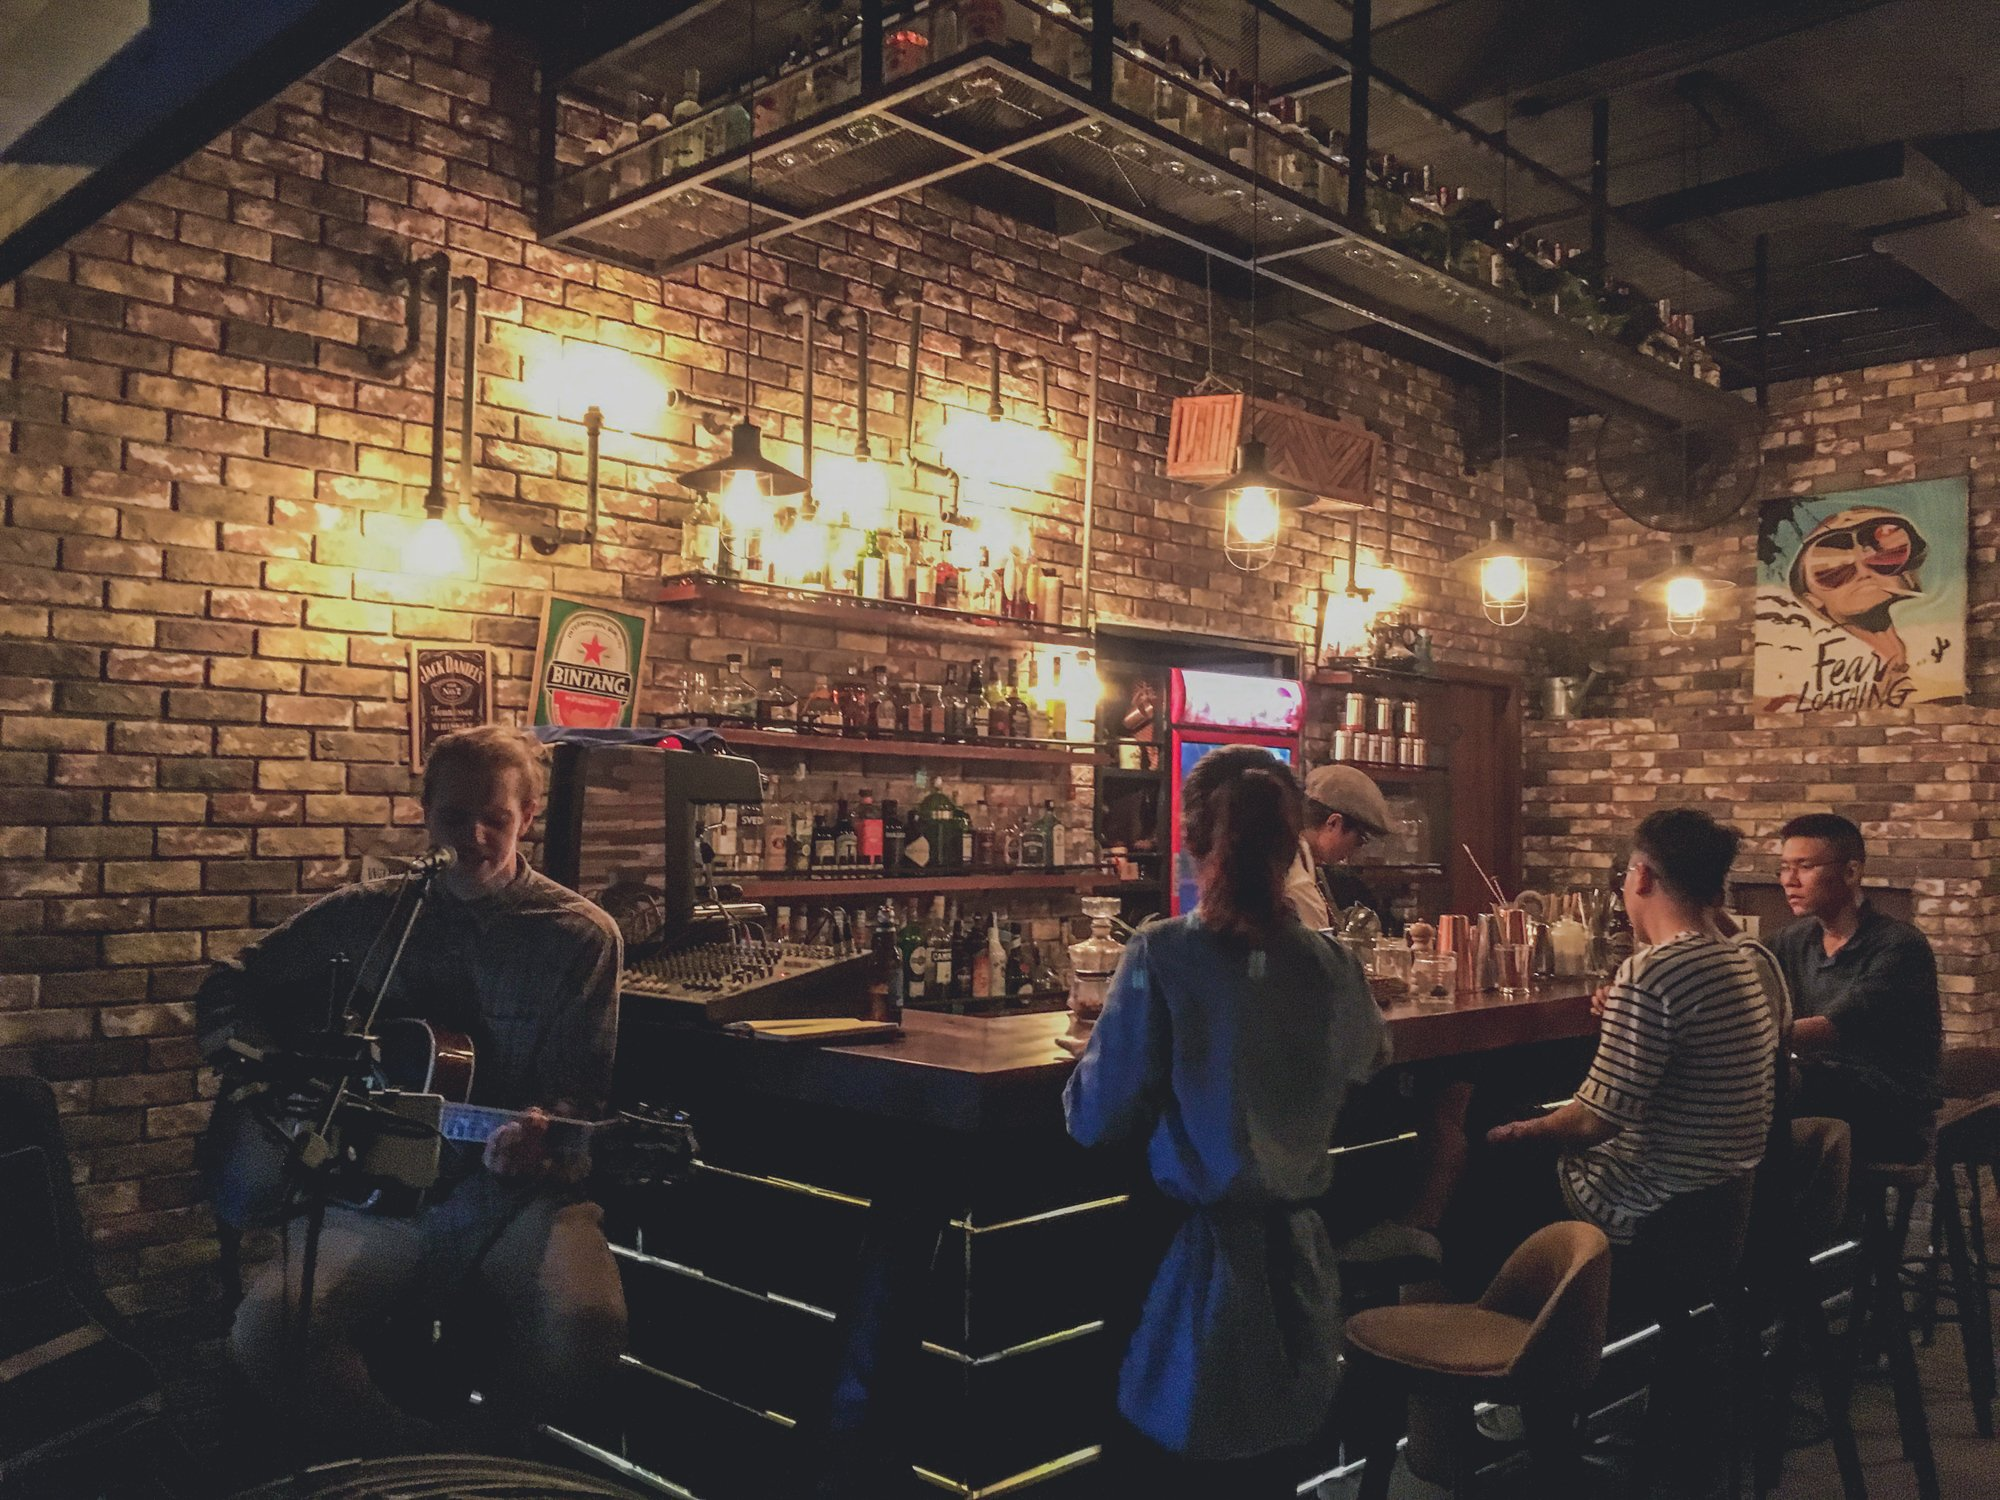 Live music and cocktails at Wanderlust Cafe and Cocktail bar in Da Nang, Vietnam